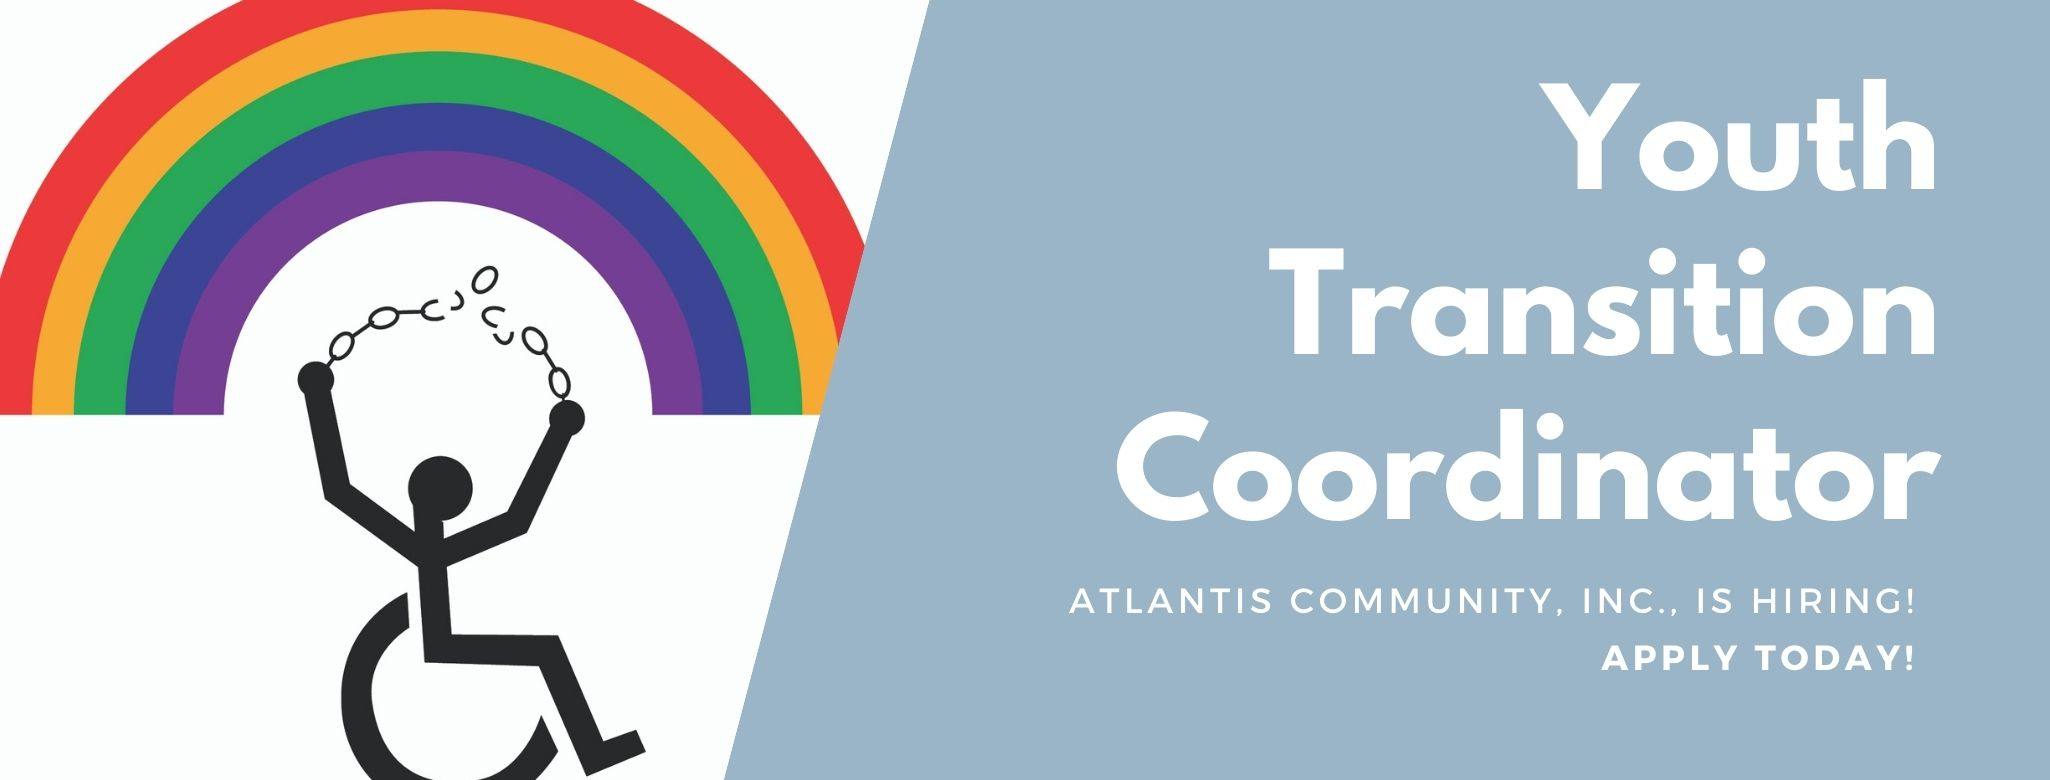 The Atlantis Community logo with a person in a wheelchair breaking chains underneath a colorful rainbow. On a blue background, text: Youth Transition Coordinator. Atlantis Community, Inc., is hiring! Apply today!